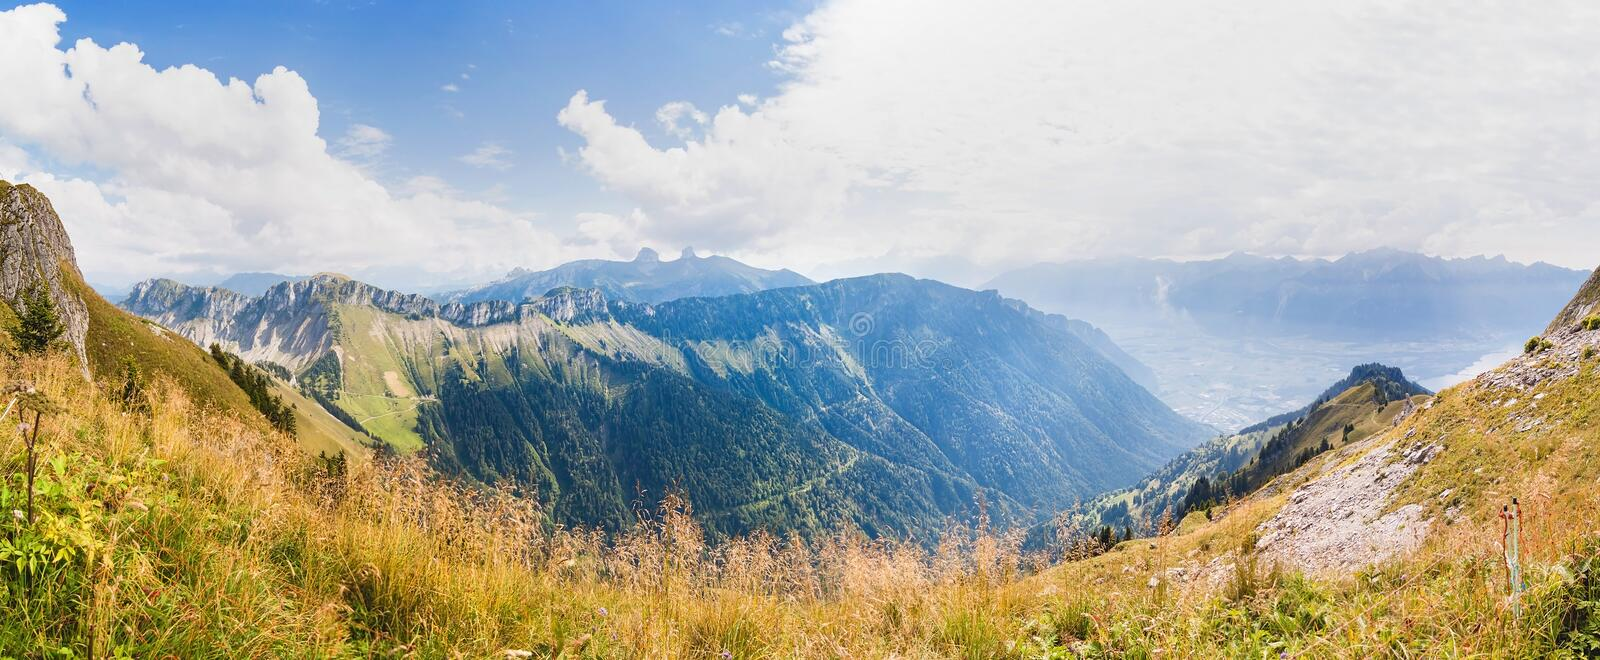 Panoramic view of Alps from the Rochers de Naye, Switzerland royalty free stock photos